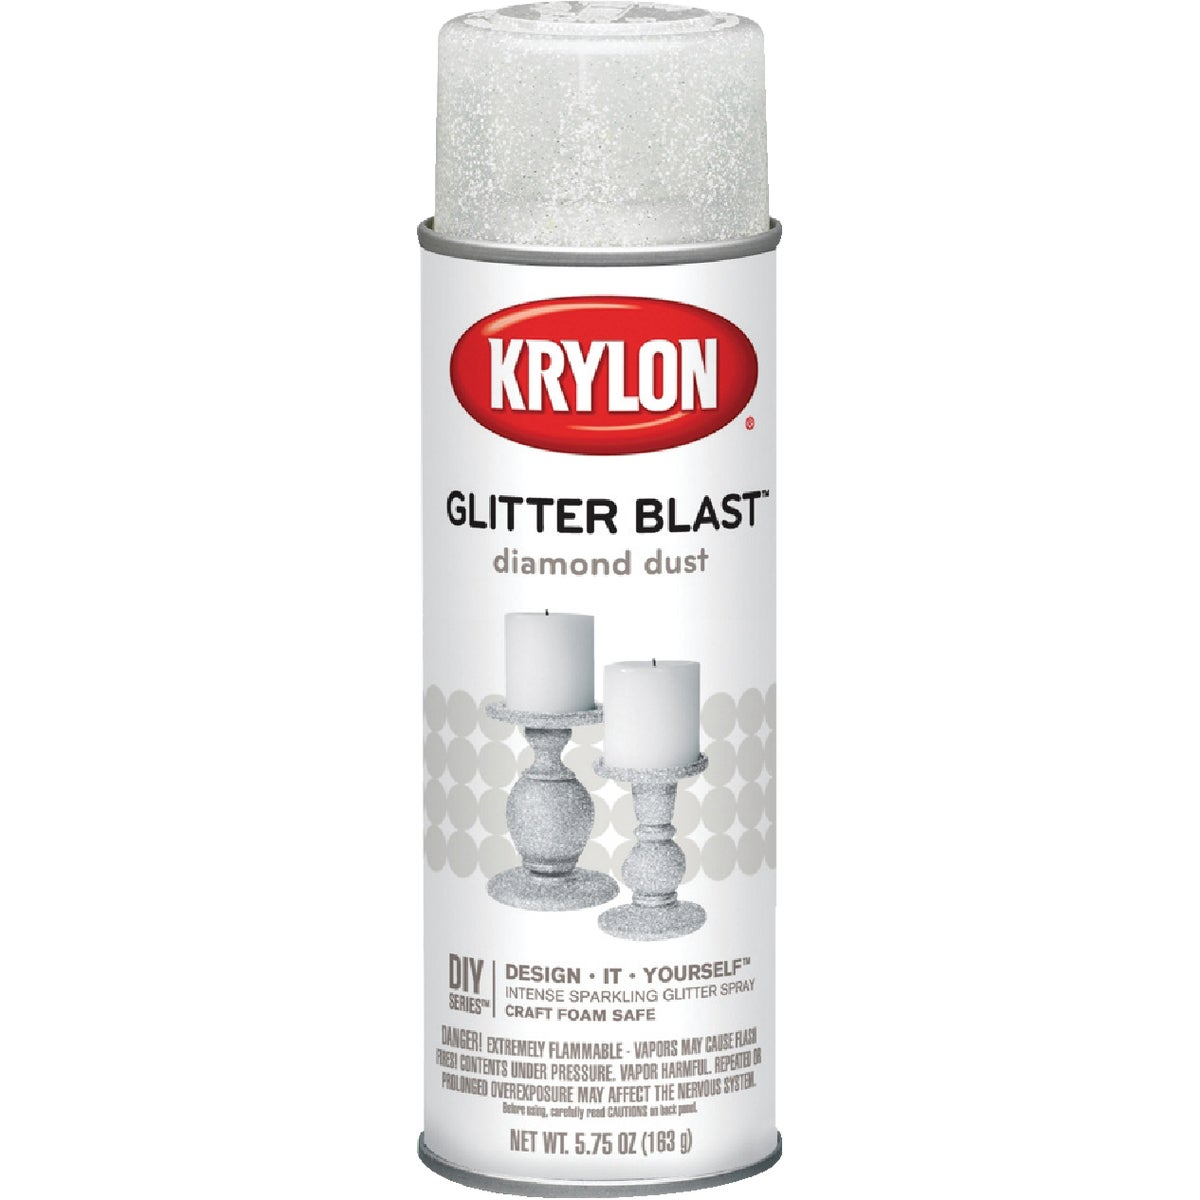 DIMND DUST GLITTER SPRAY - K03804000 by Krylon/consumer Div